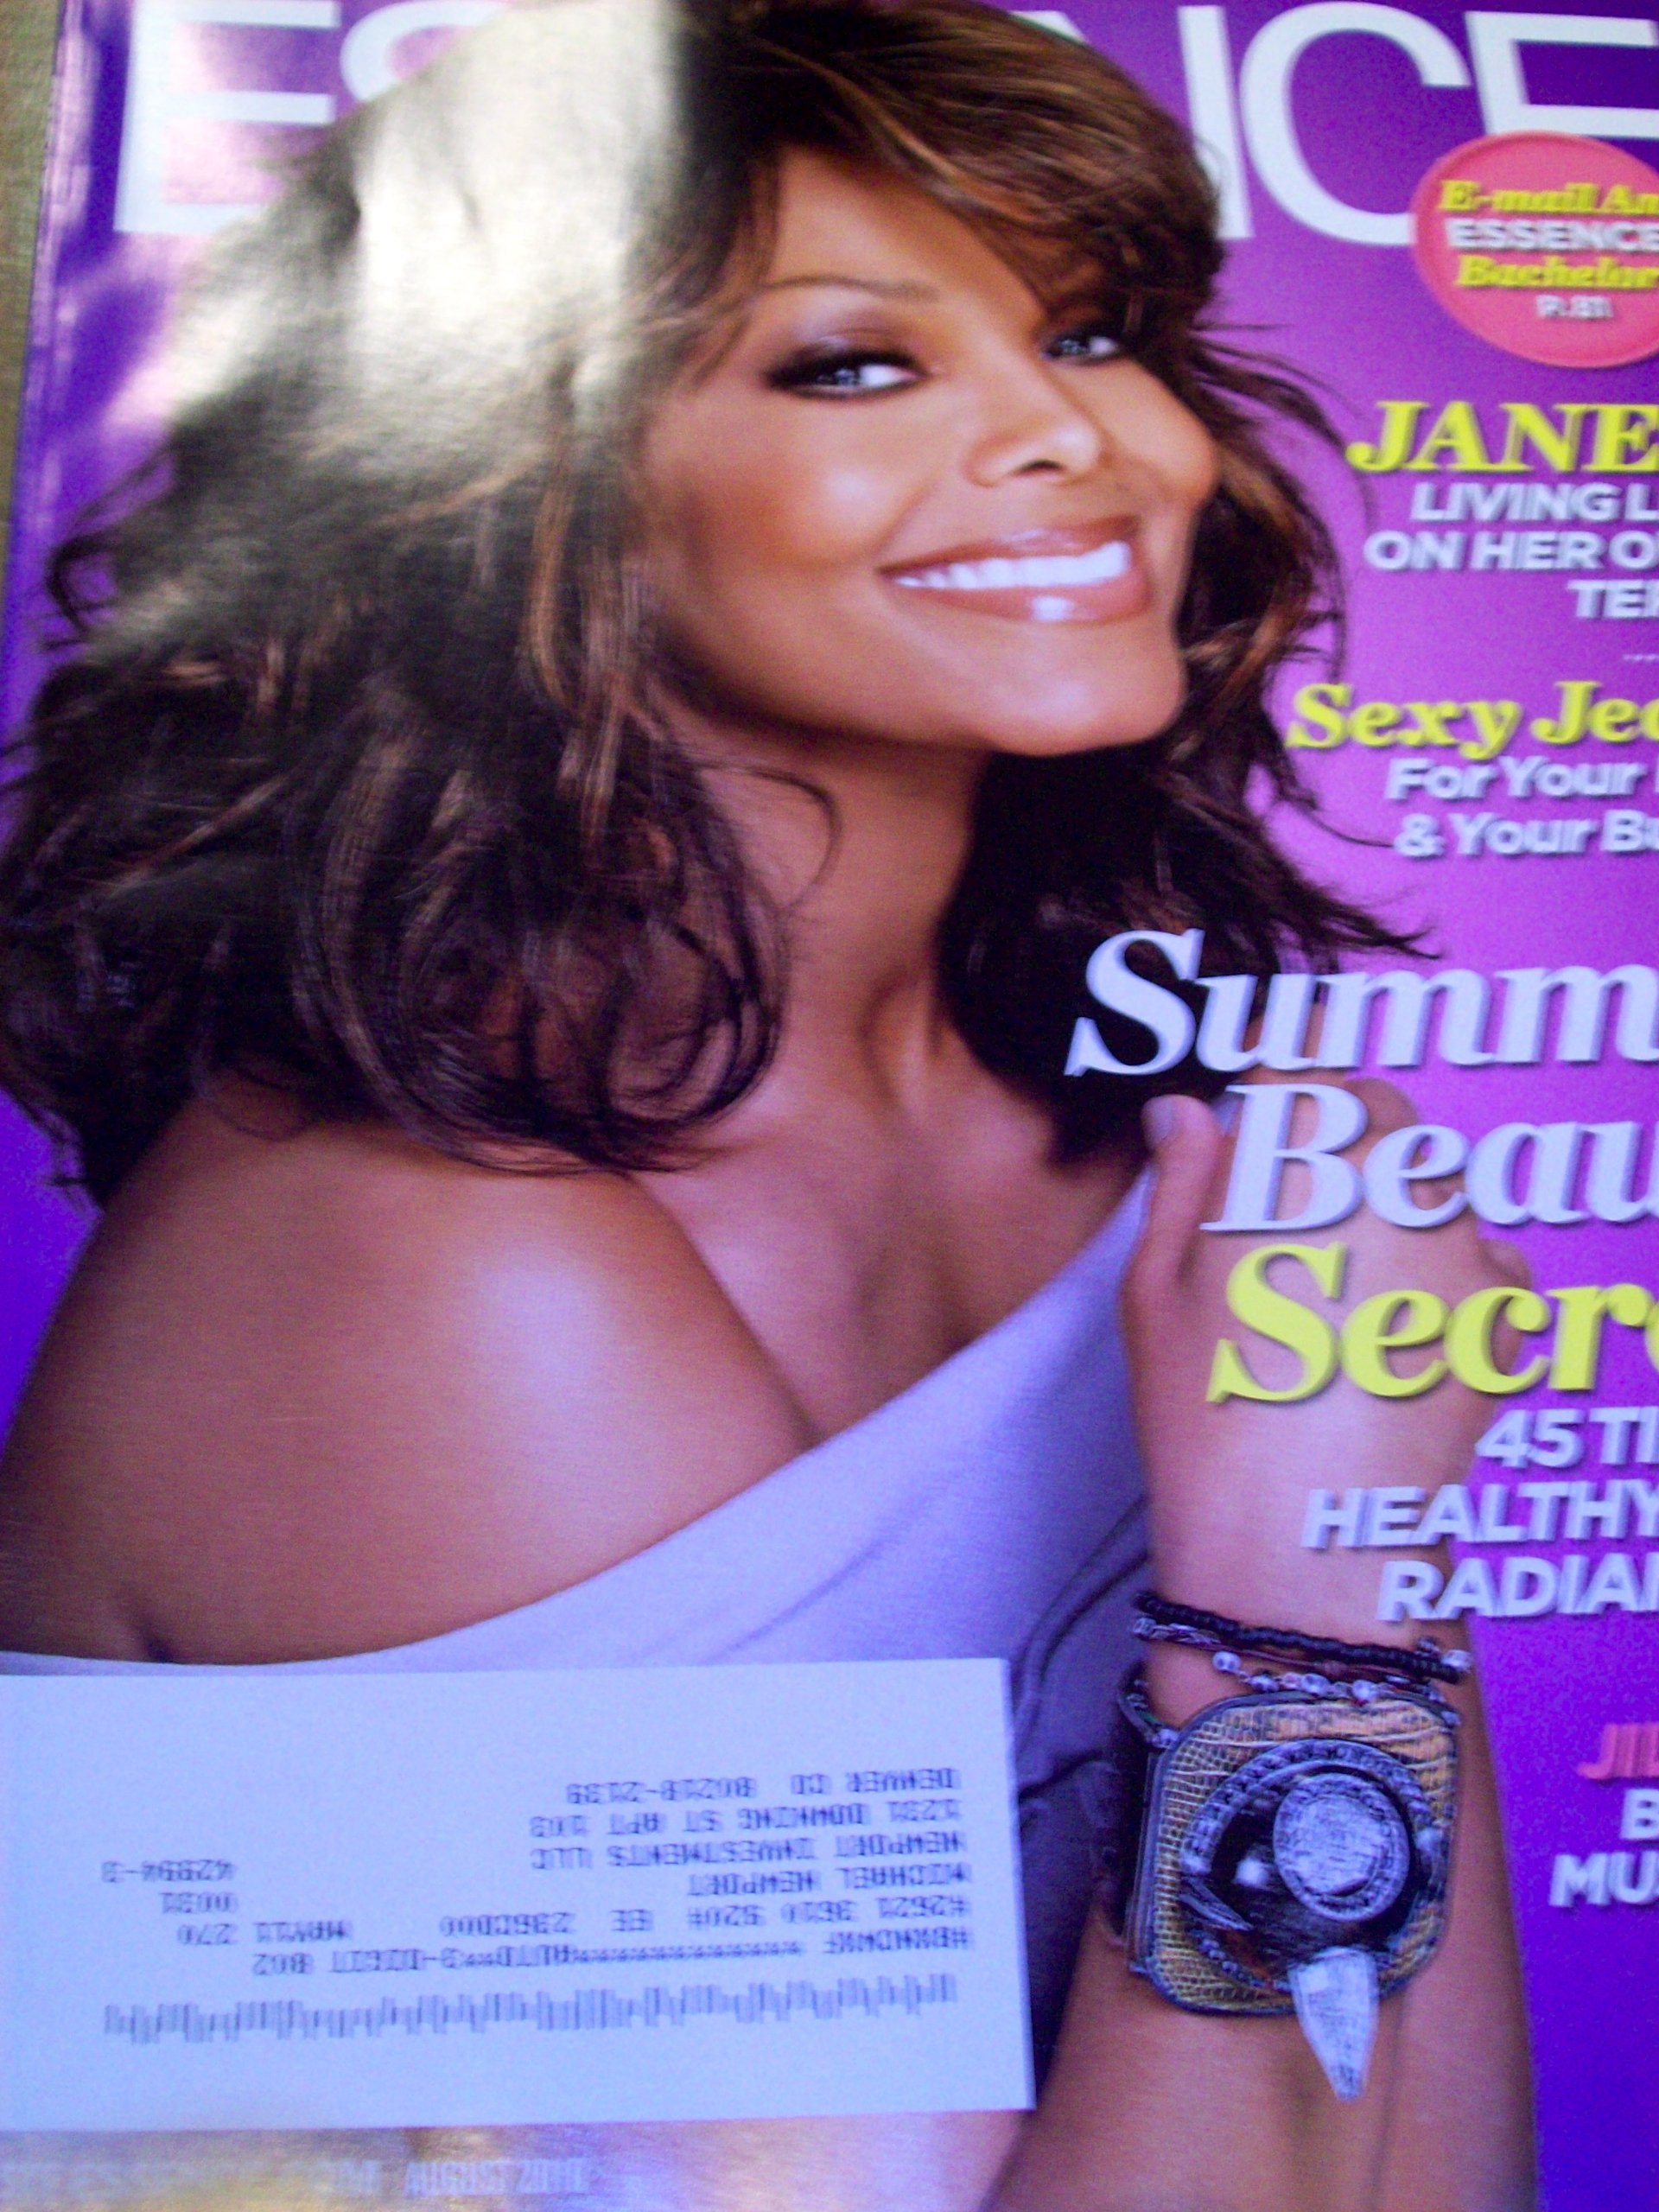 Read Online Essence August 2010 Janet Jackson Summer Beauty Secrets Jill Scott PDF